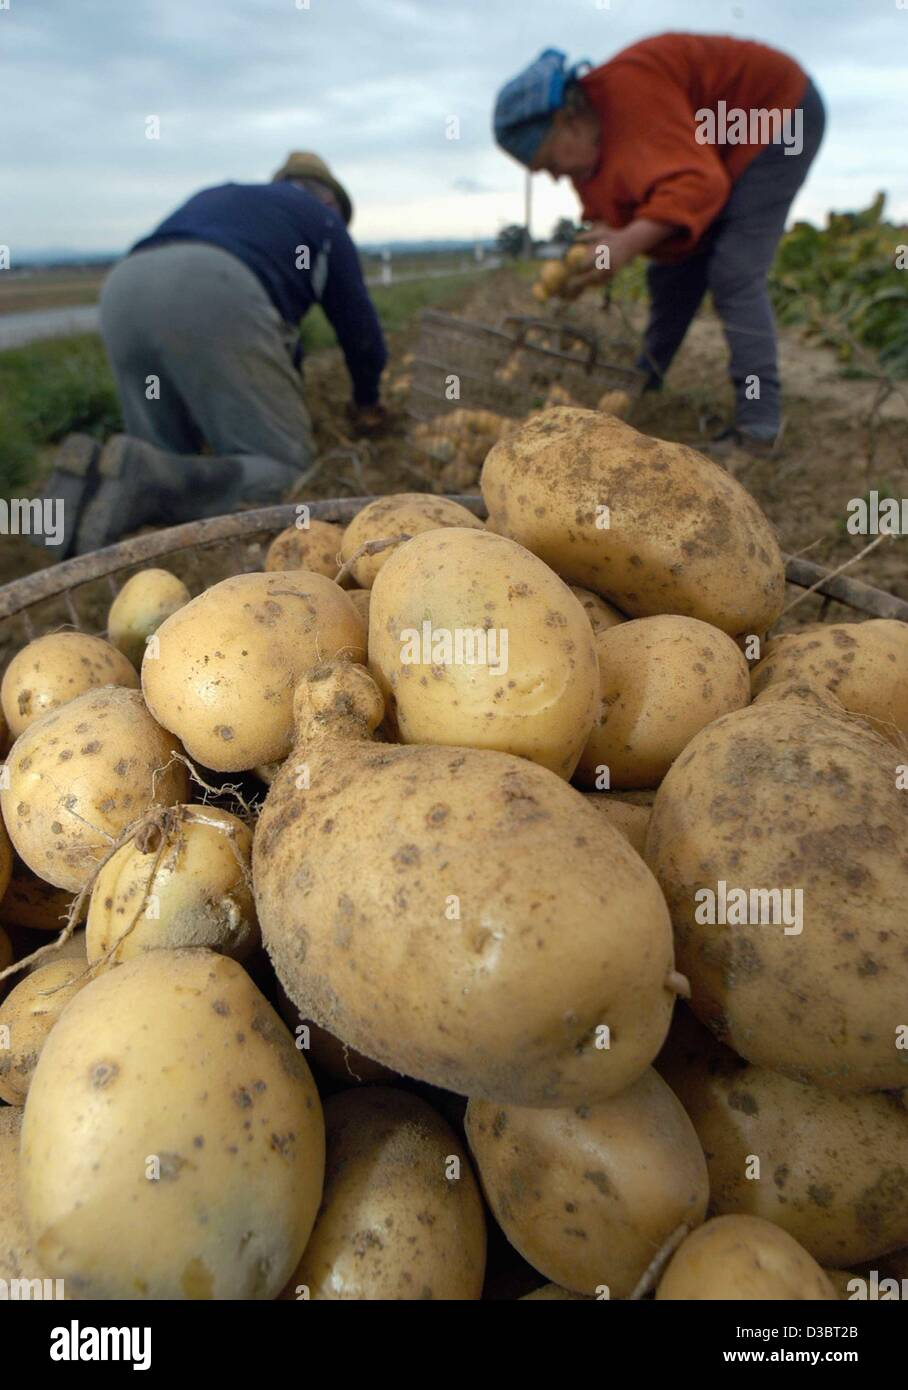 (dpa) - Two farmers harvest potatoes near Osterhofen, Germany, 23 September 2003. The dry summer has resulted in - Stock Image